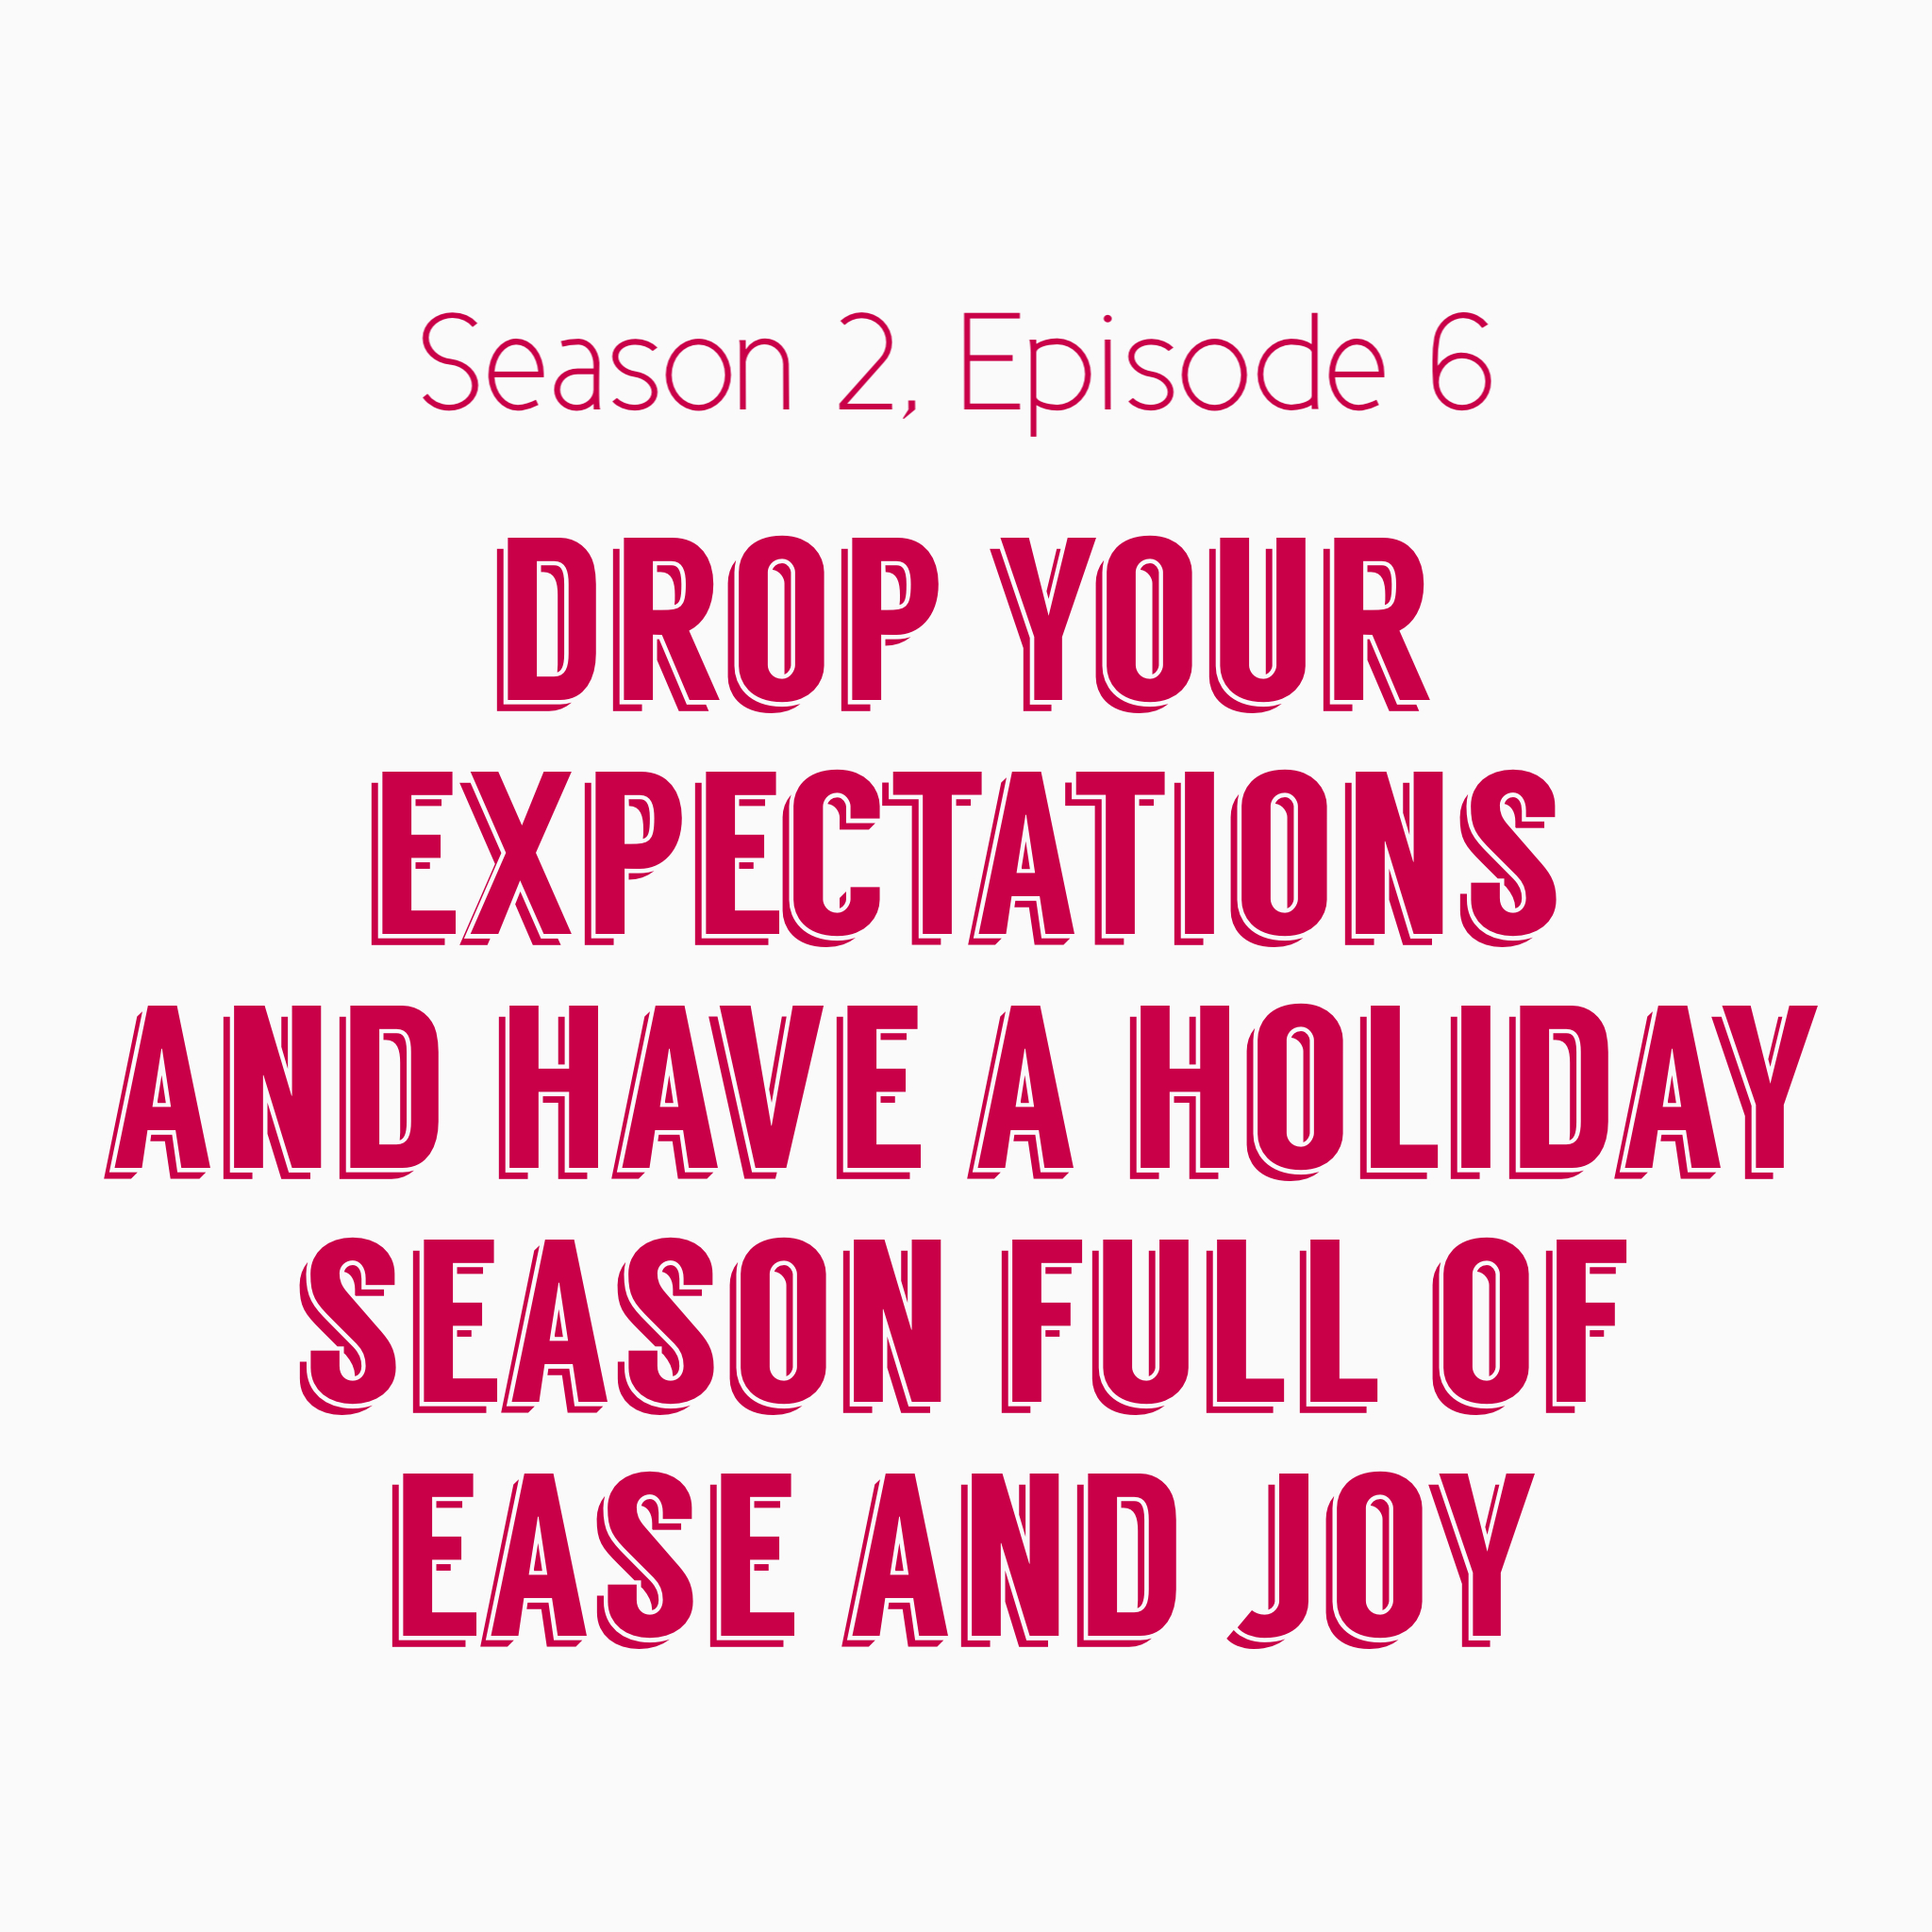 Mama's Mental Health - Drop Your Expectations and Have a Holiday Season Full of Ease and Joy